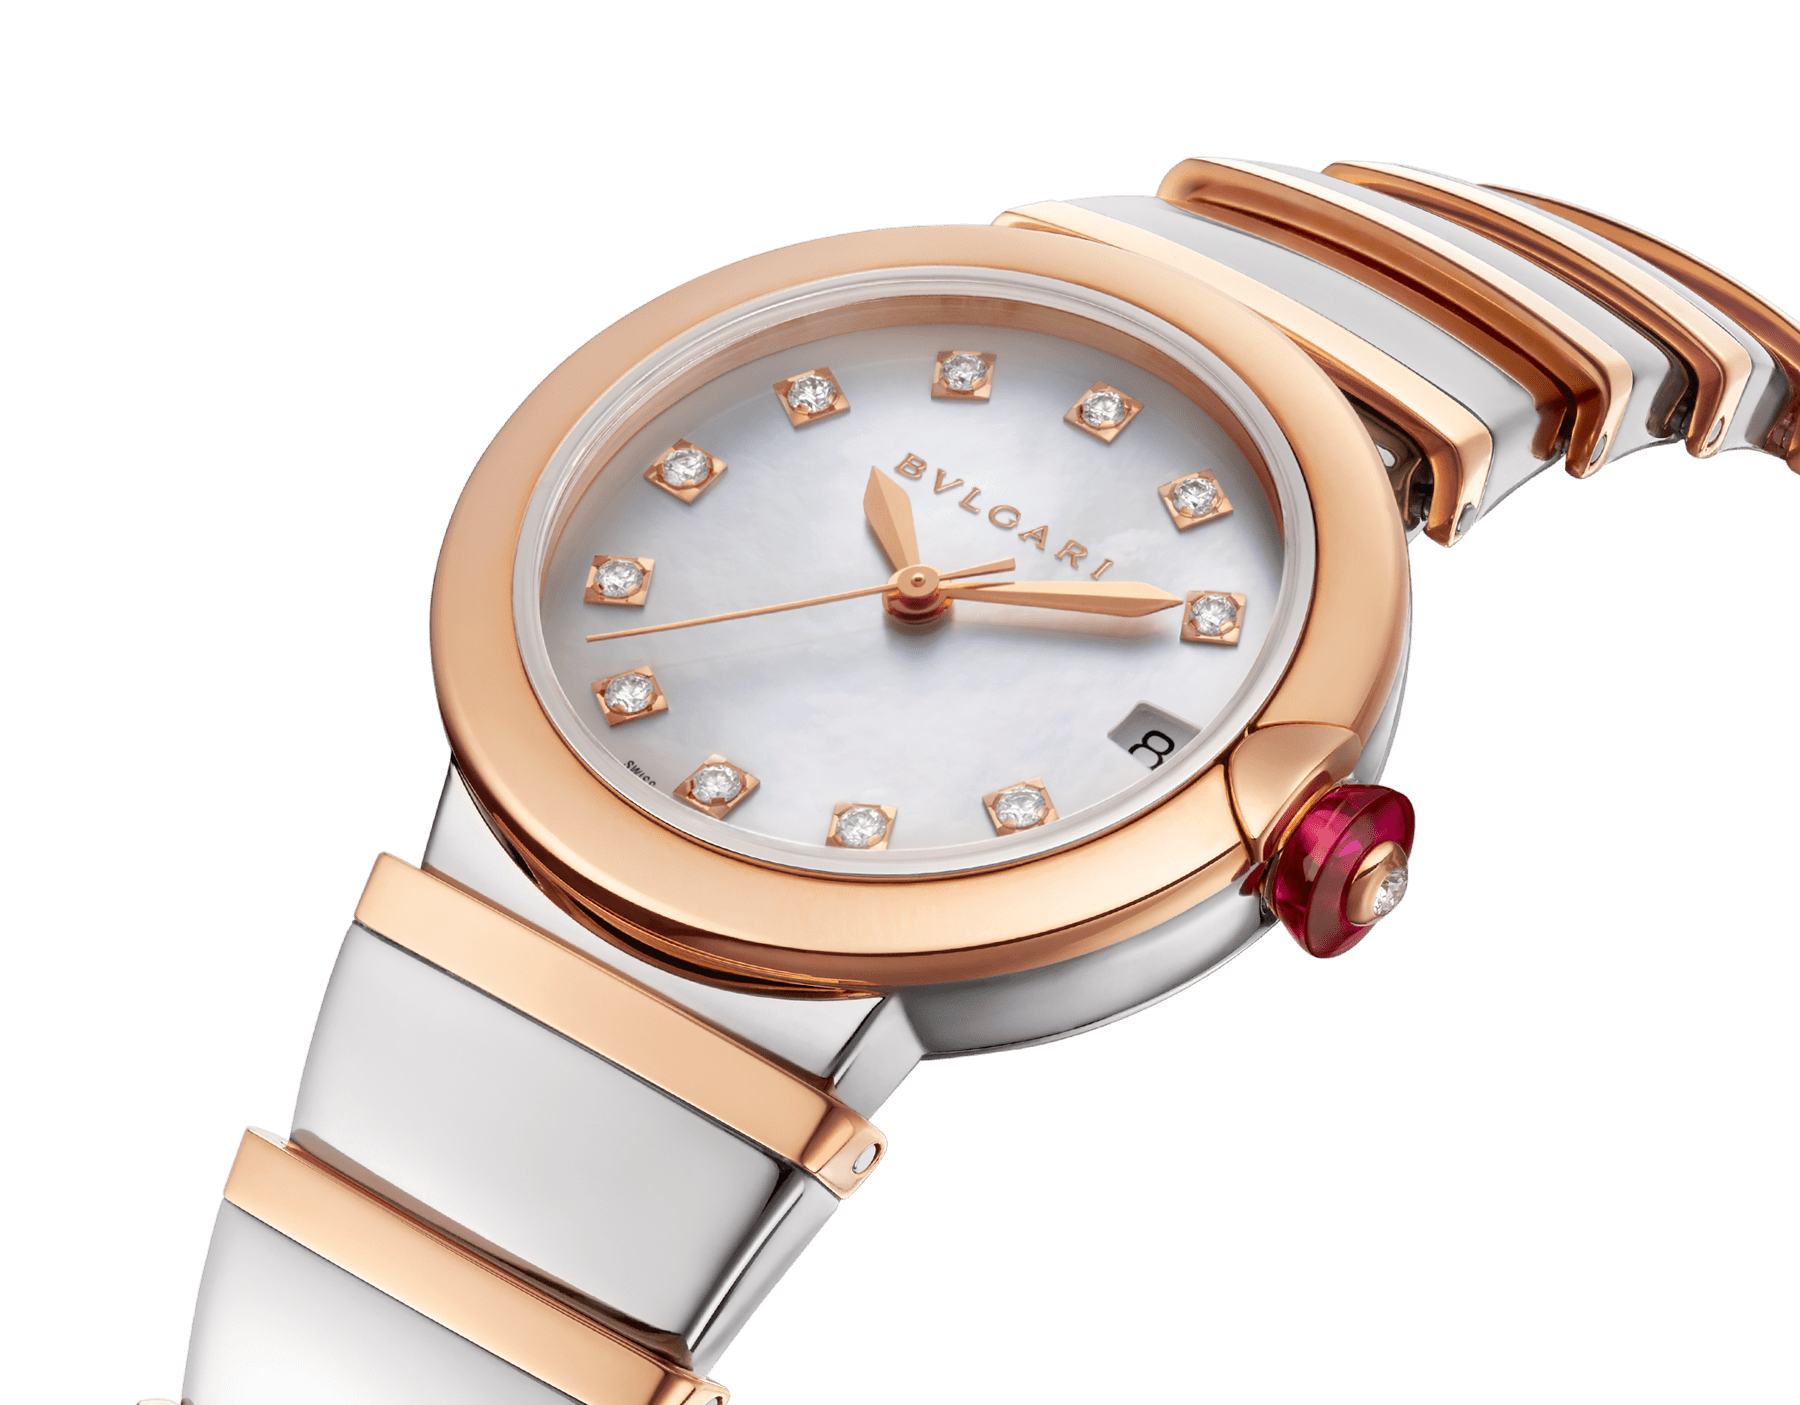 LVCEA watch with stainless steel case, 18 kt rose gold bezel, white mother-of-pearl dial, diamond indexes, stainless steel and 18 kt rose gold bracelet. 102198 image 3